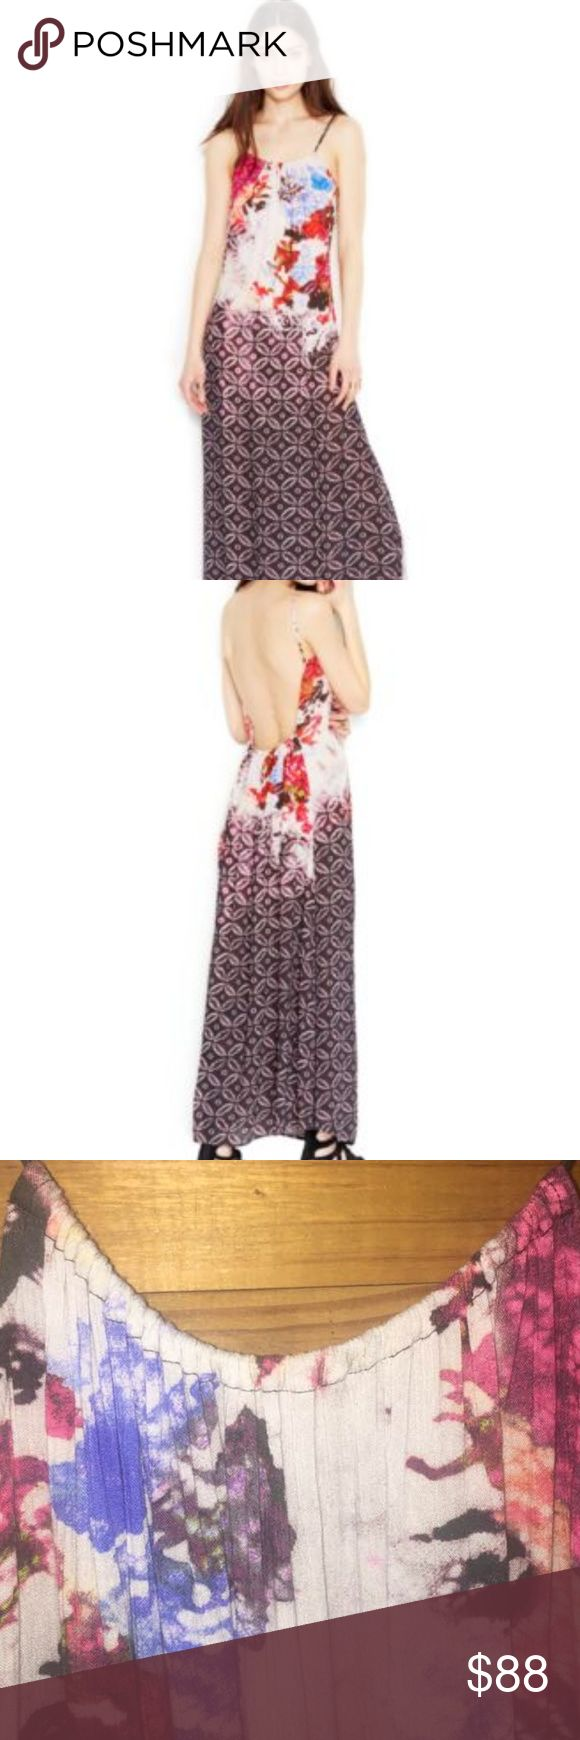 Free People Nomad Maxi Dress Multi color maxi dress features a scoop neck line with high side slits and a sexy low back.  Only worn a handful of times. The spaghetti straps are not adjustable. Free People Dresses Maxi